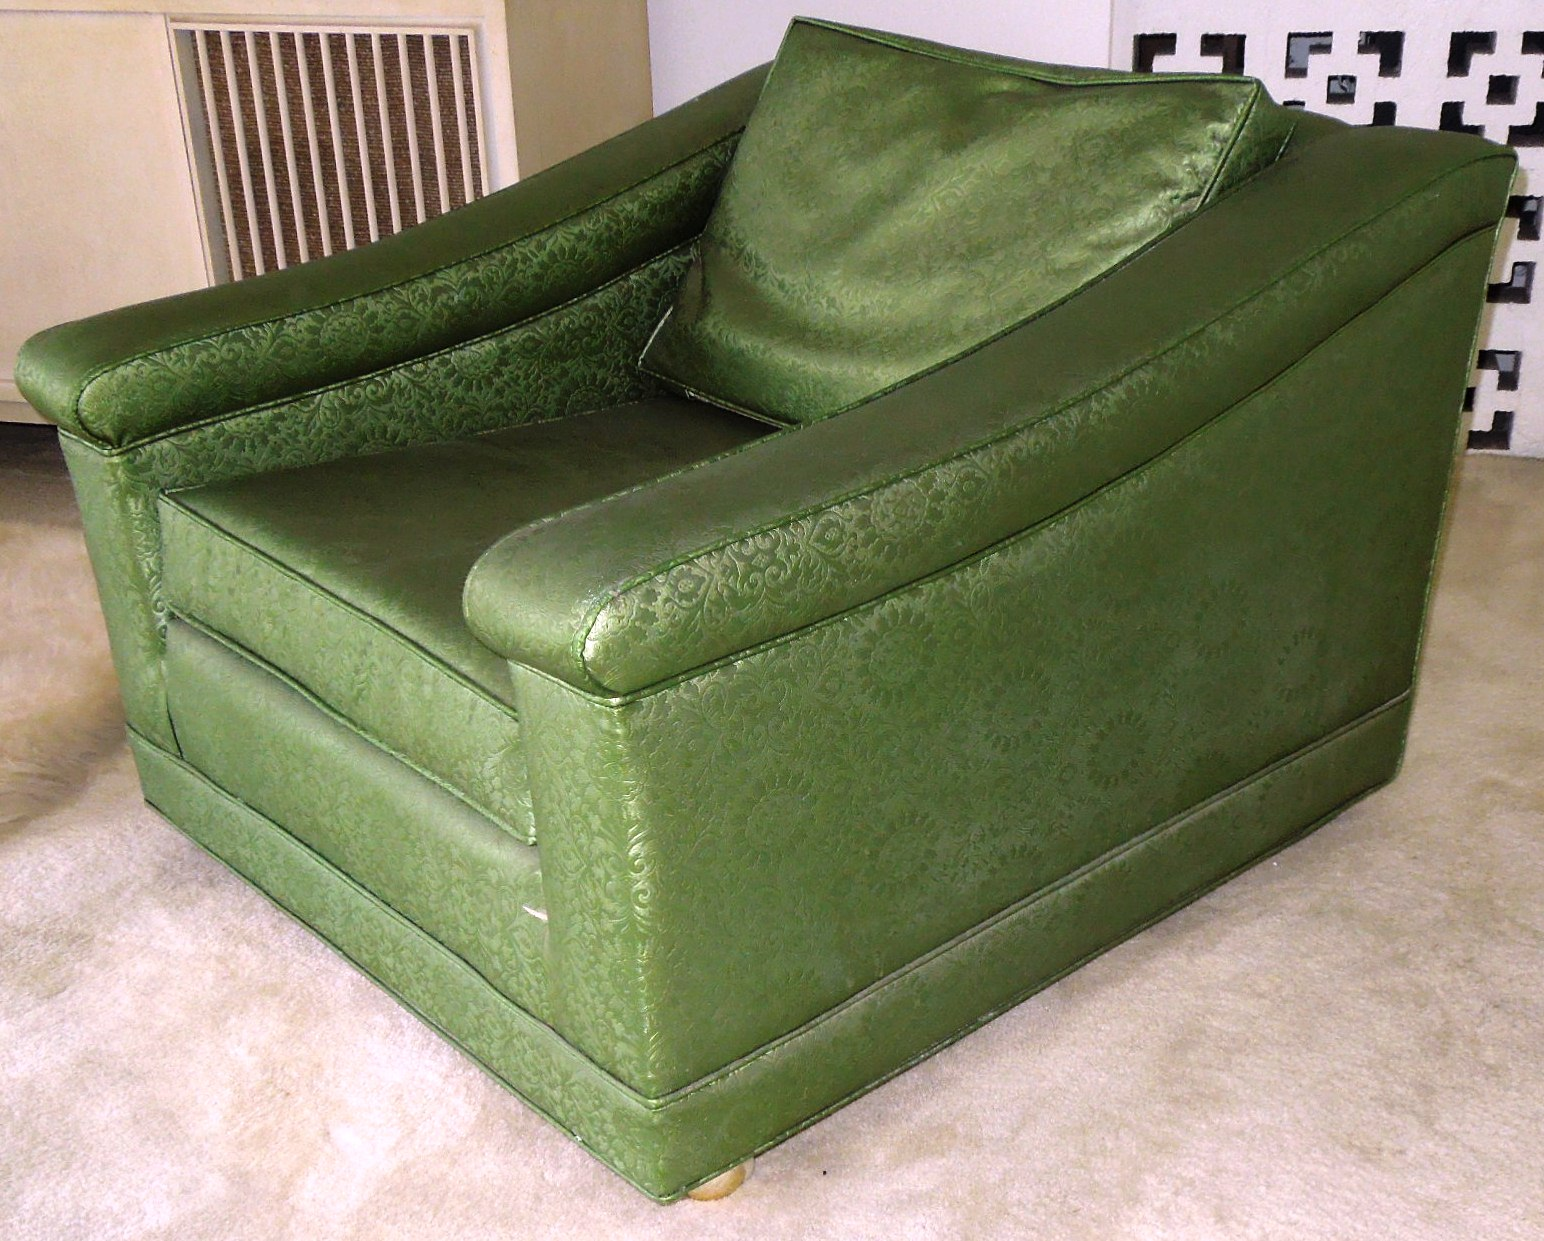 Vintage 1960s luxury lounge chair vinyl green color for for 80s furniture for sale